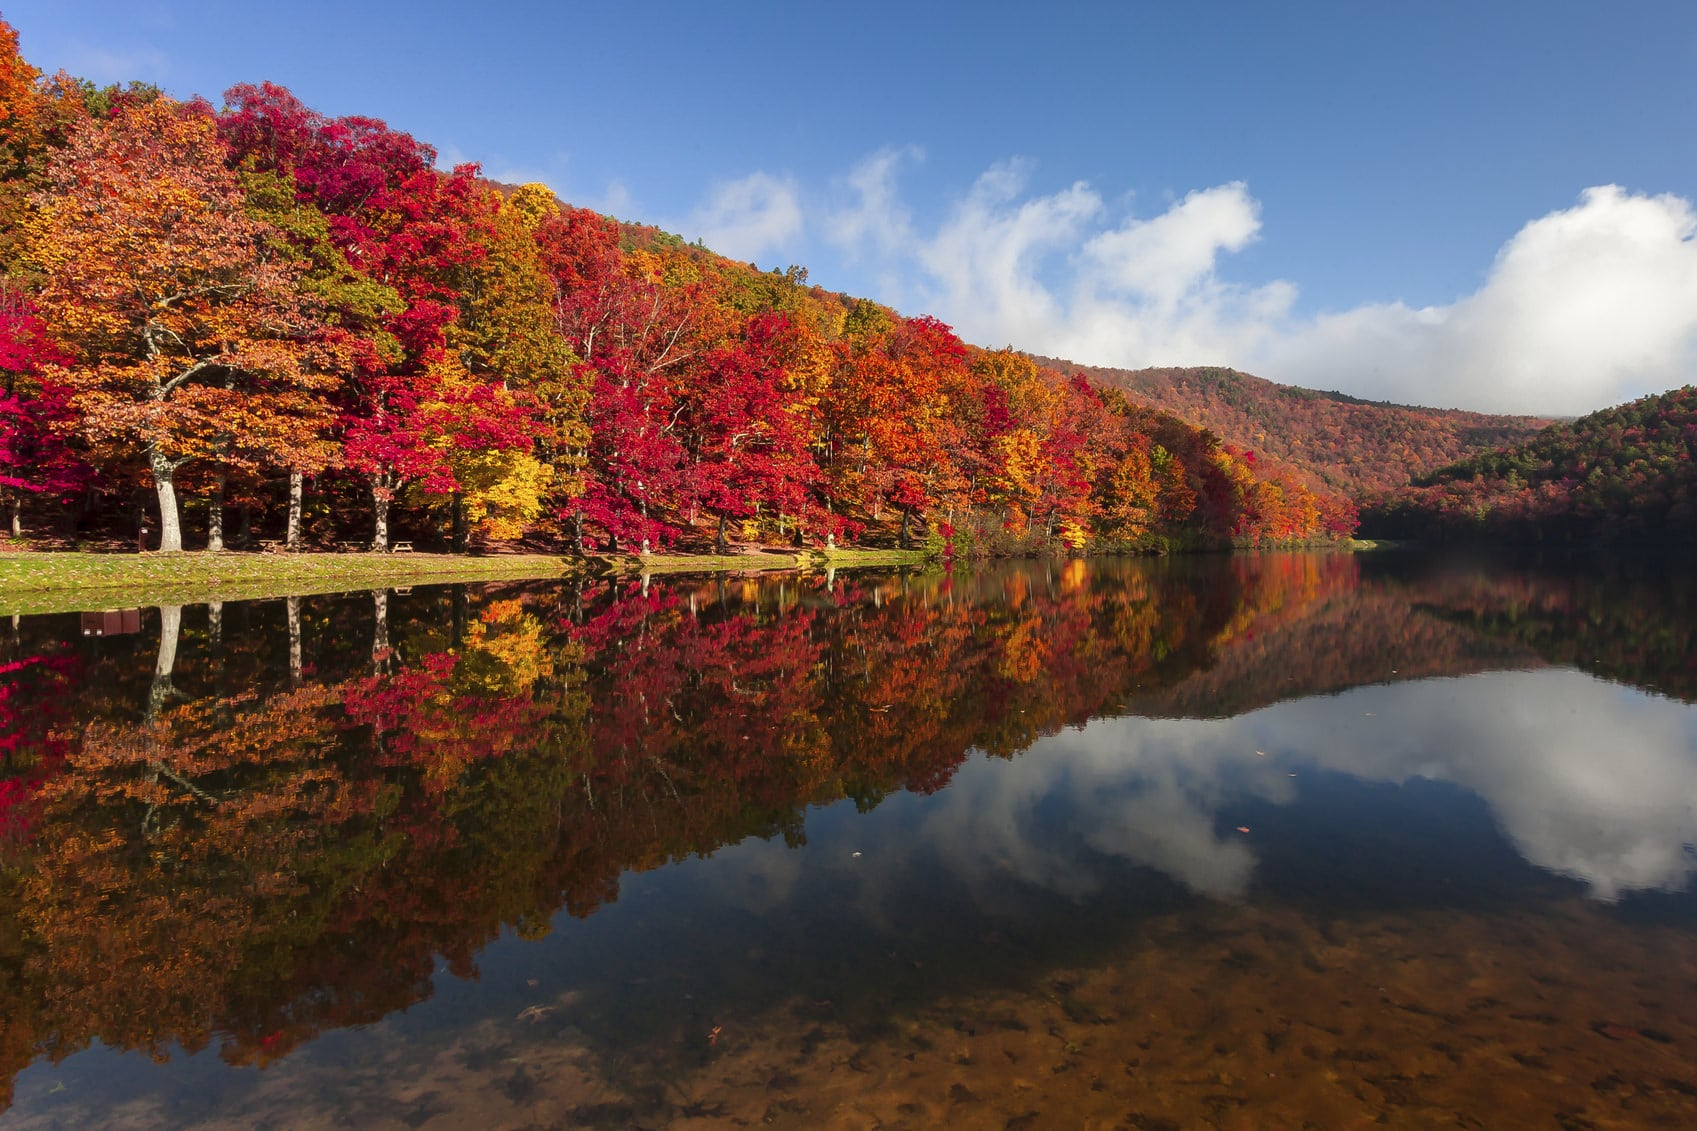 New Hampshire Fall Foliage Wallpaper A Guide To Pennsylvania S Fall Foliage Willow Tree And